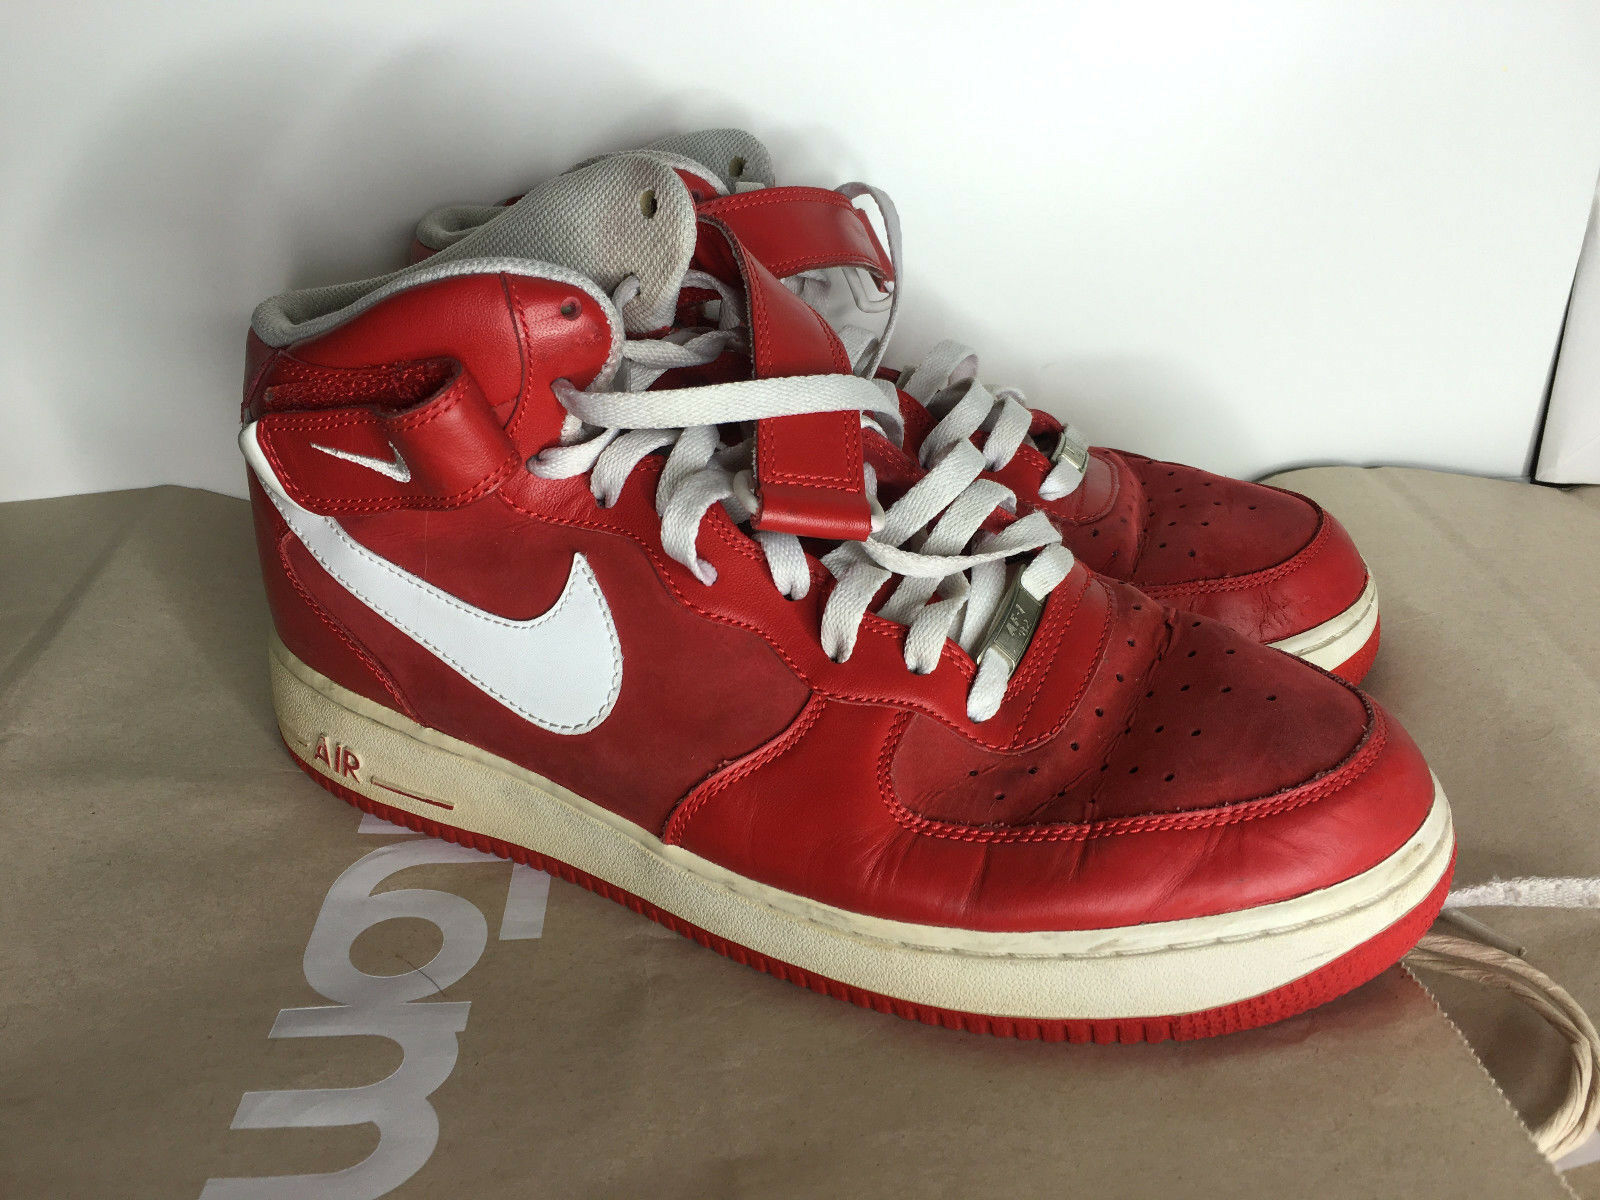 Red Mid top Nike Air Force 1 Strap Comfortable